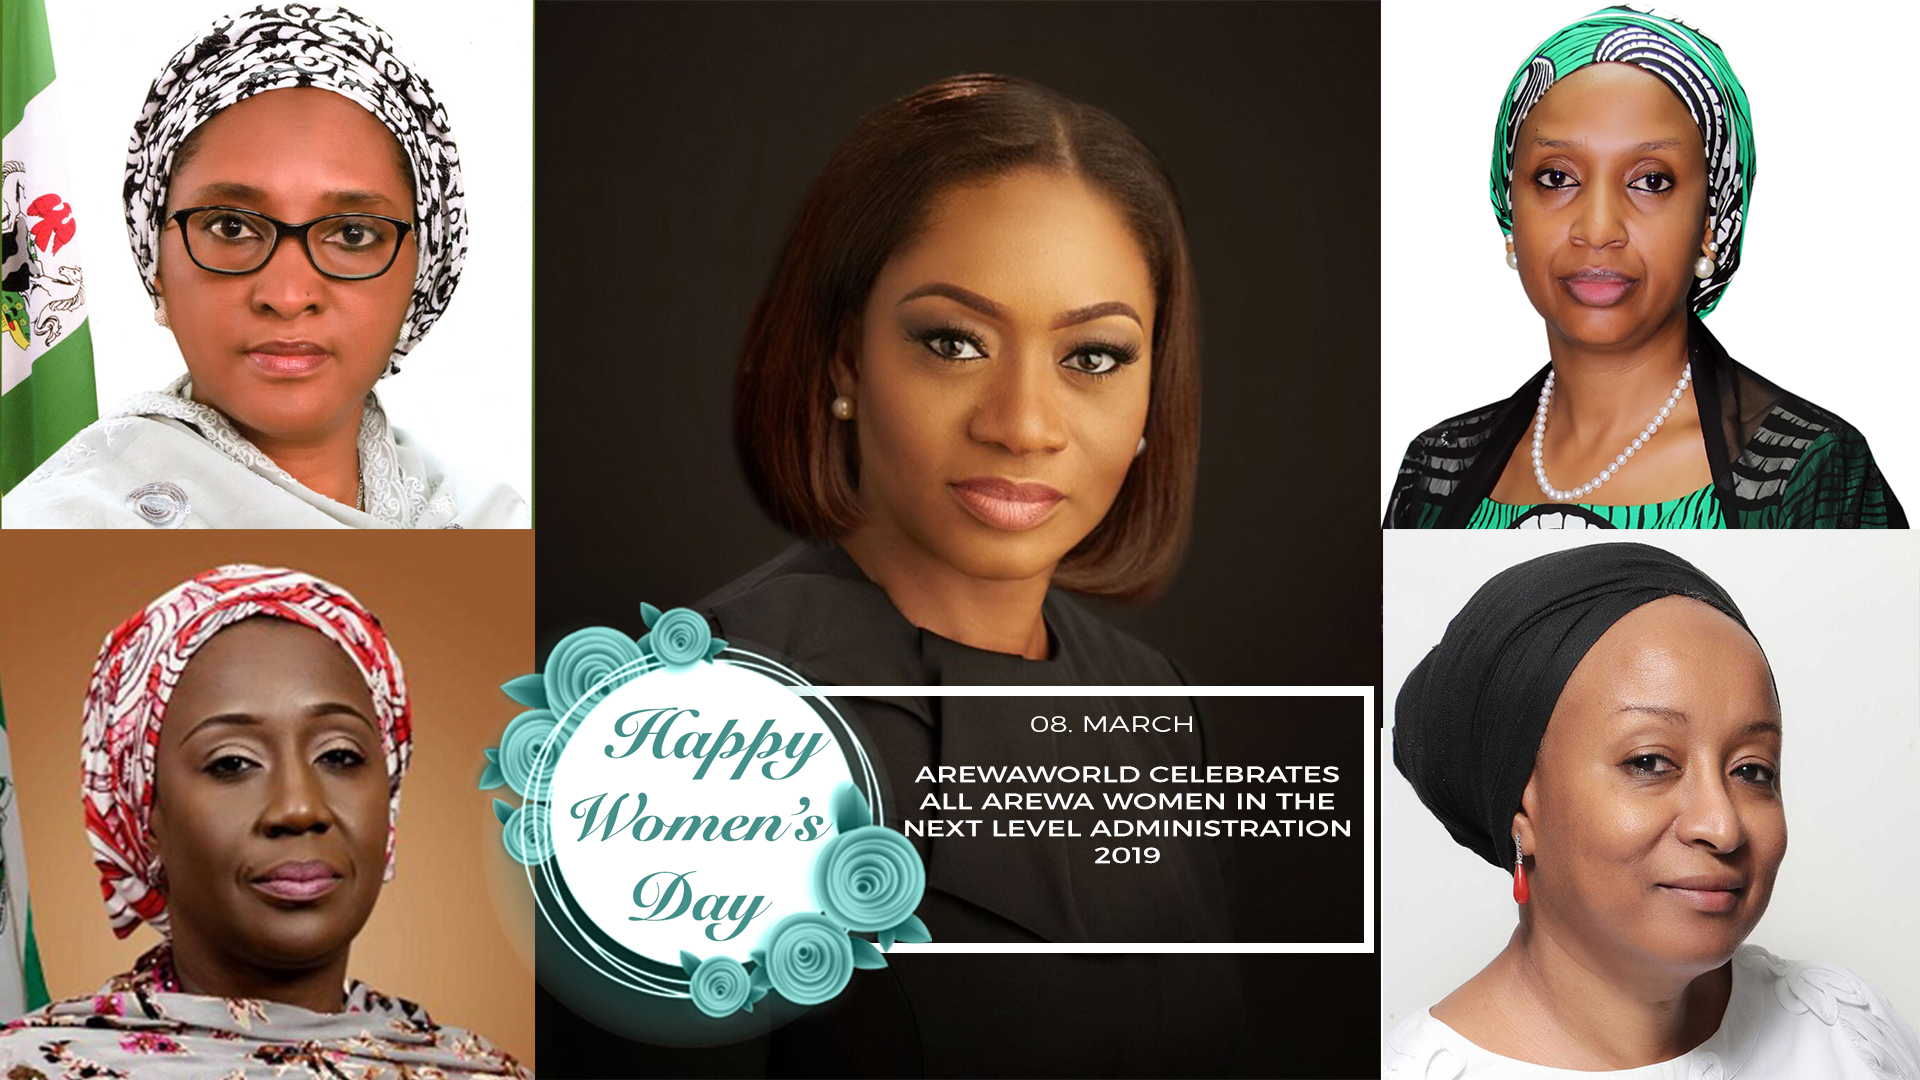 Arewa Women celebrate international women's day